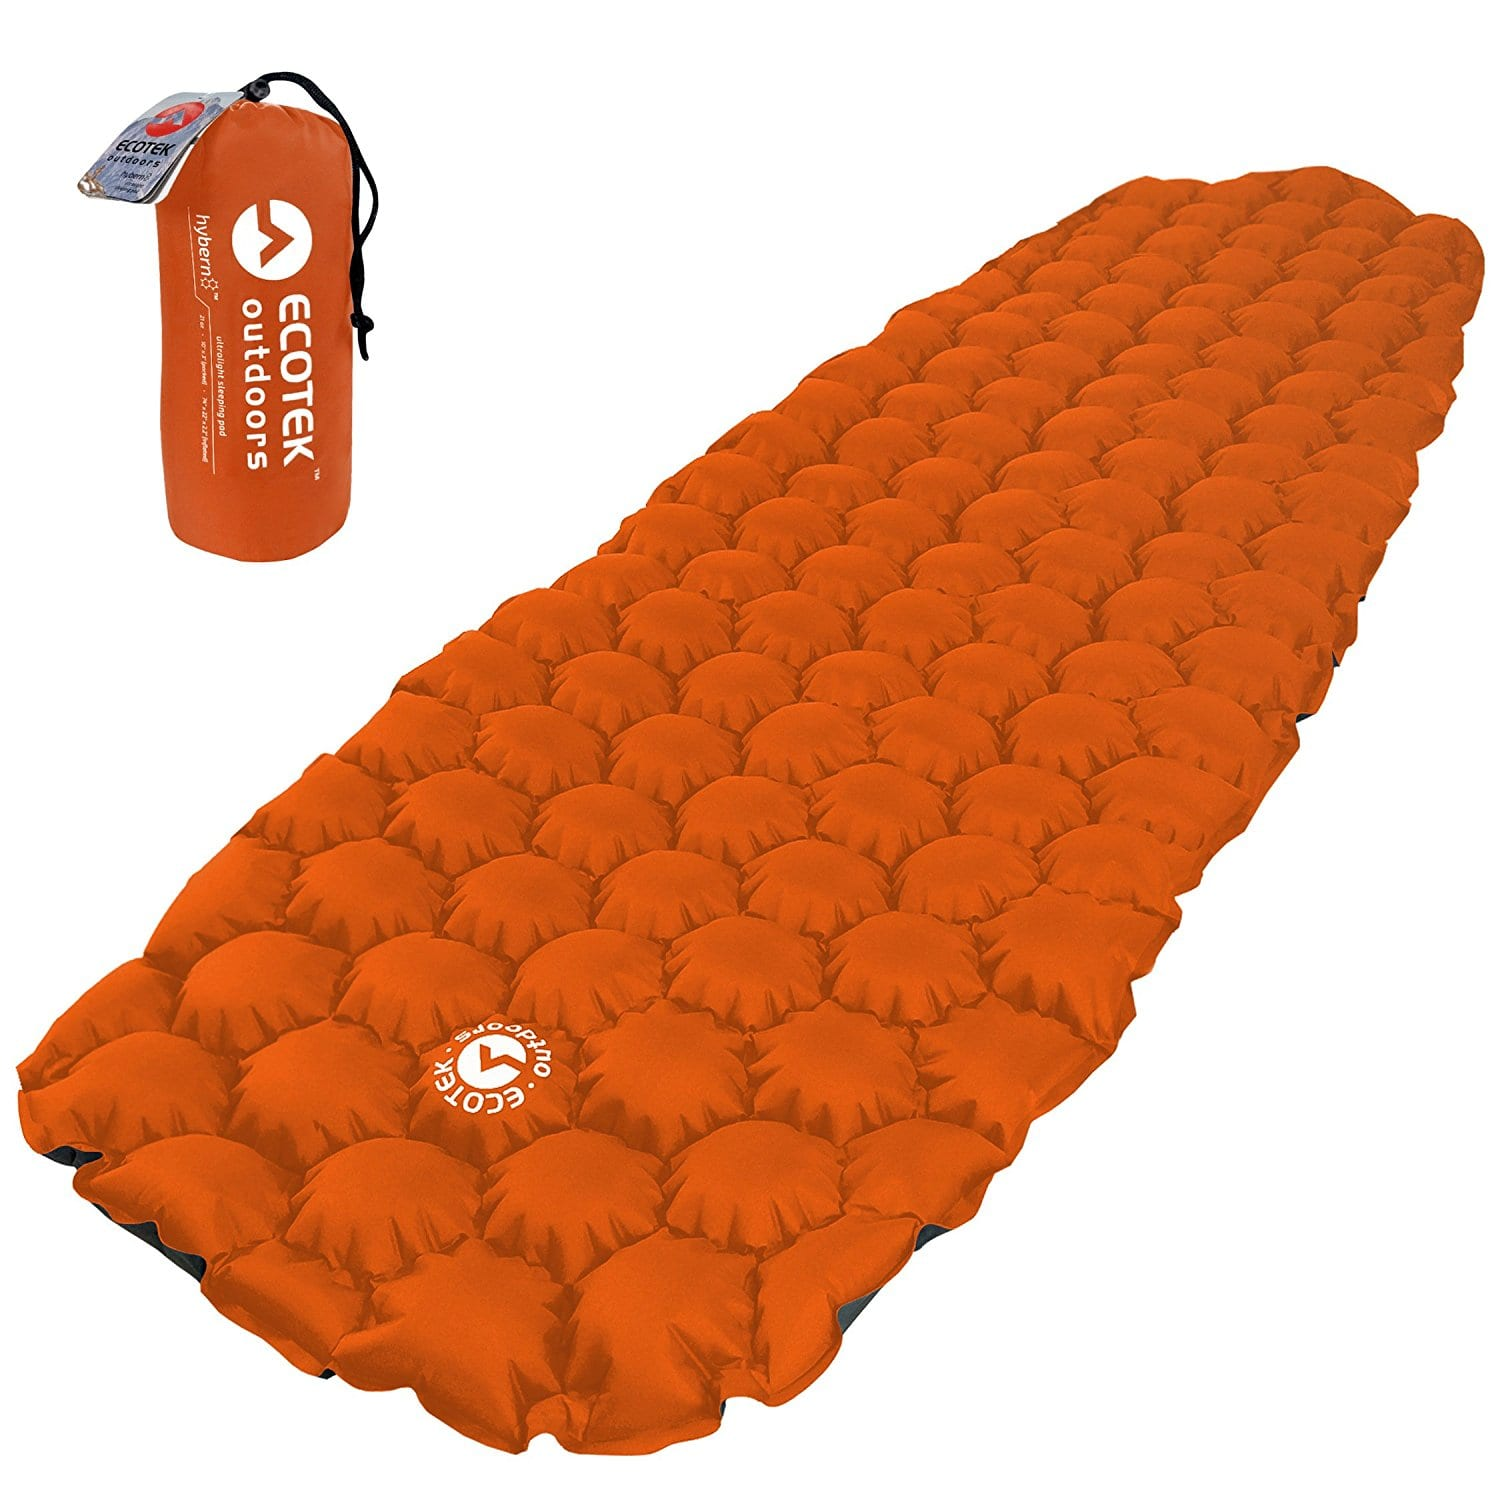 Eco Friendly Outdoors Hybern8 Ultralight Inflatable Sleeping Pad